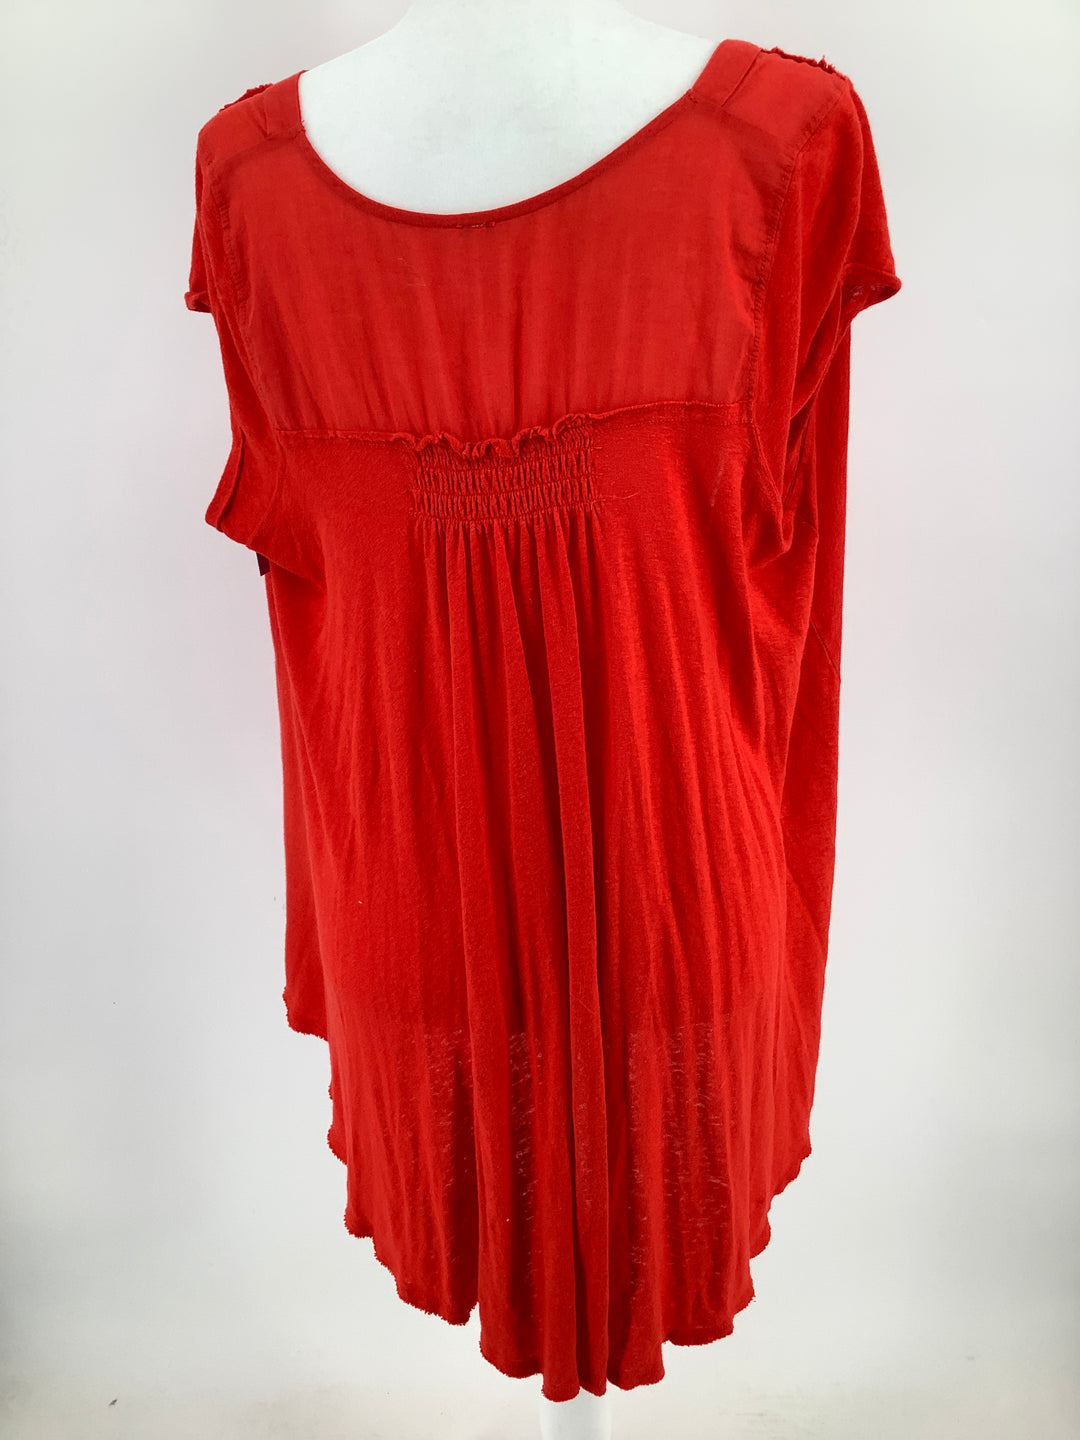 Photo #1 - BRAND: FREE PEOPLE , STYLE: TOP SHORT SLEEVE , COLOR: RED , SIZE: S , SKU: 105-4864-141